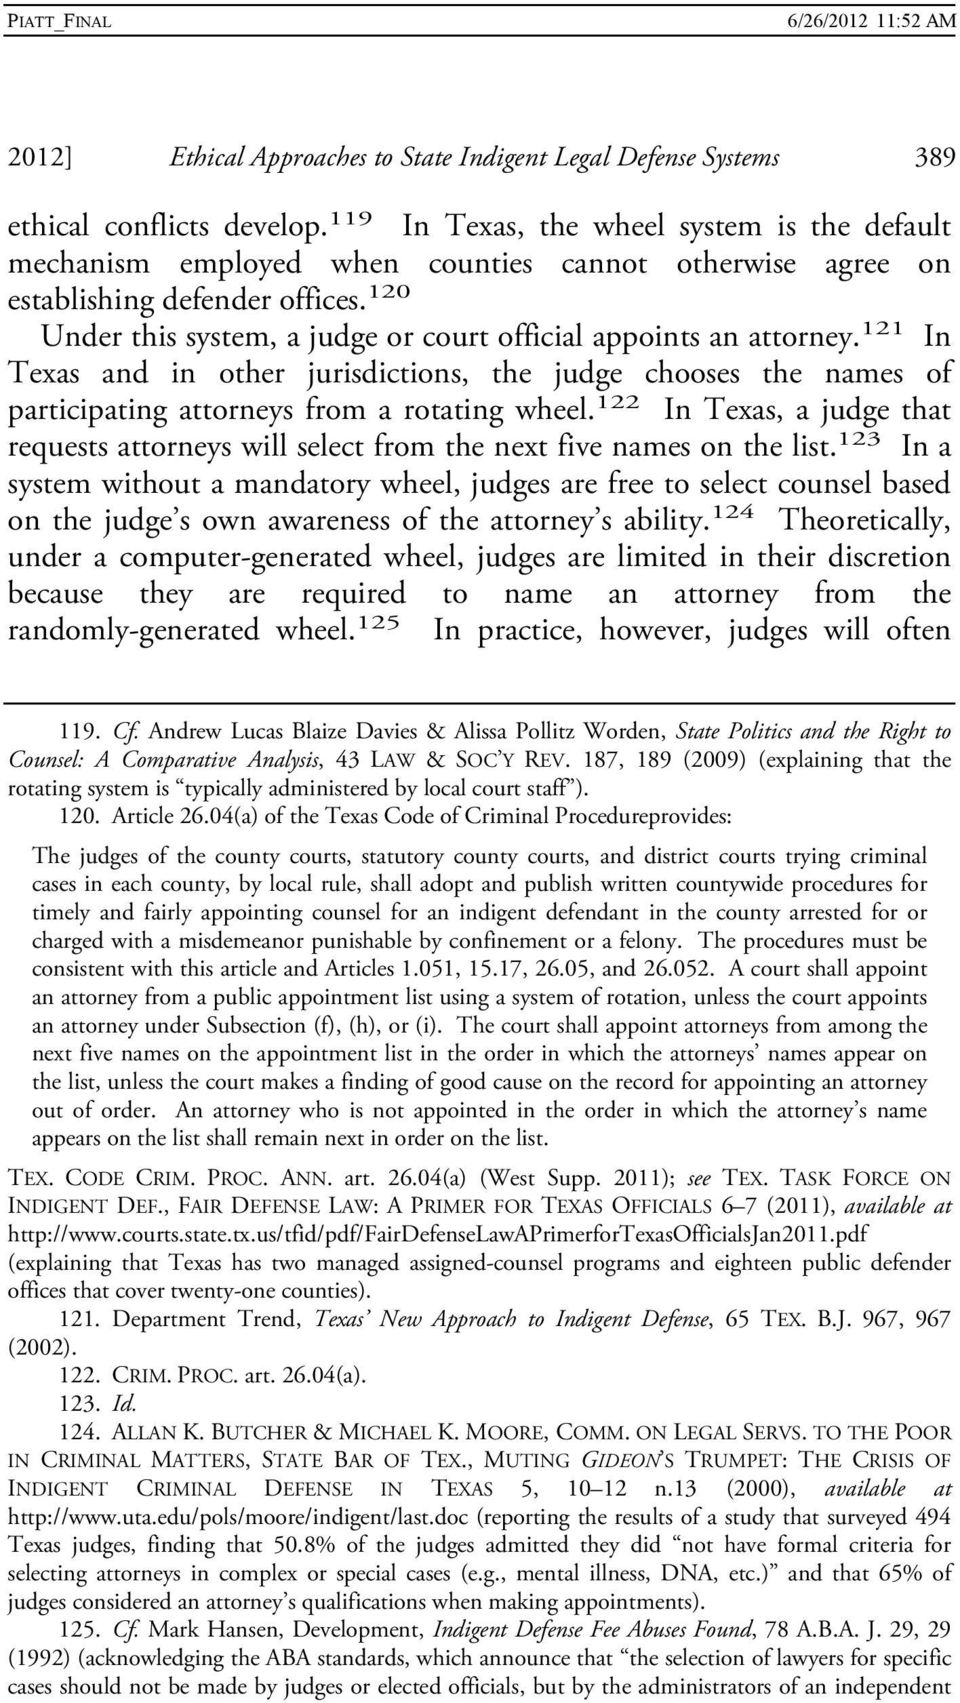 120 Under this system, a judge or court official appoints an attorney. 121 In Texas and in other jurisdictions, the judge chooses the names of participating attorneys from a rotating wheel.